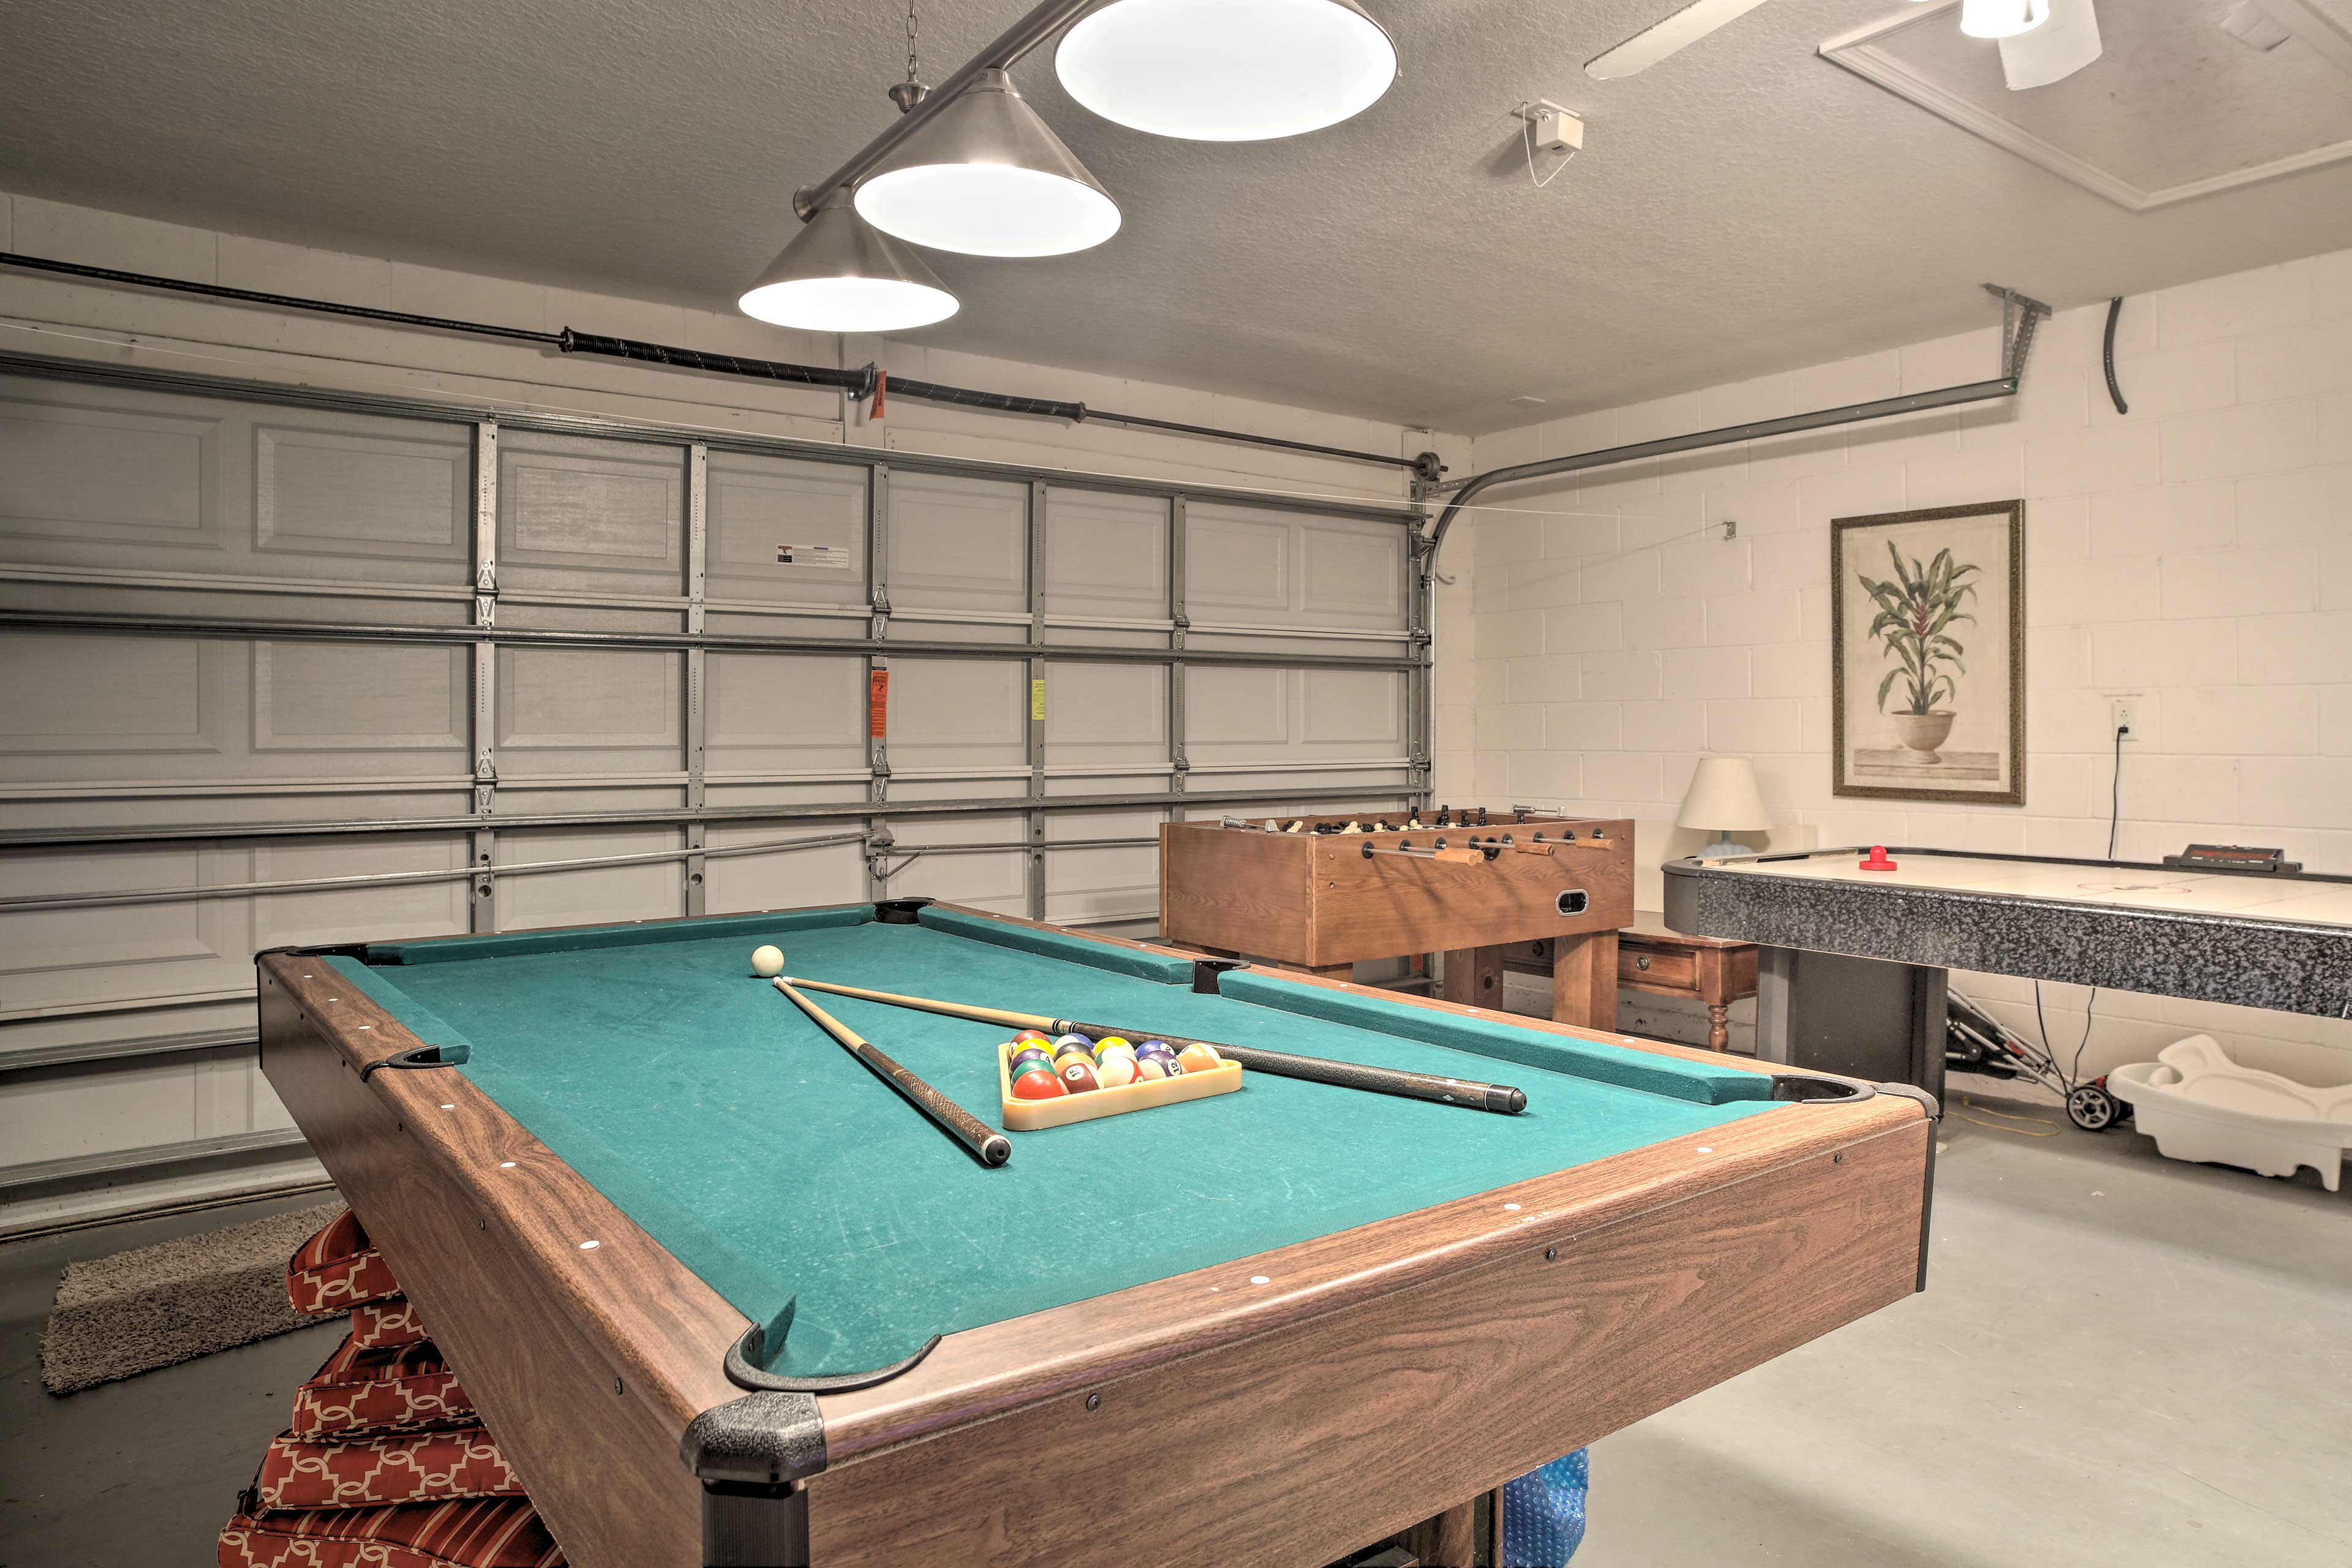 The garage game room even has a foosball table!